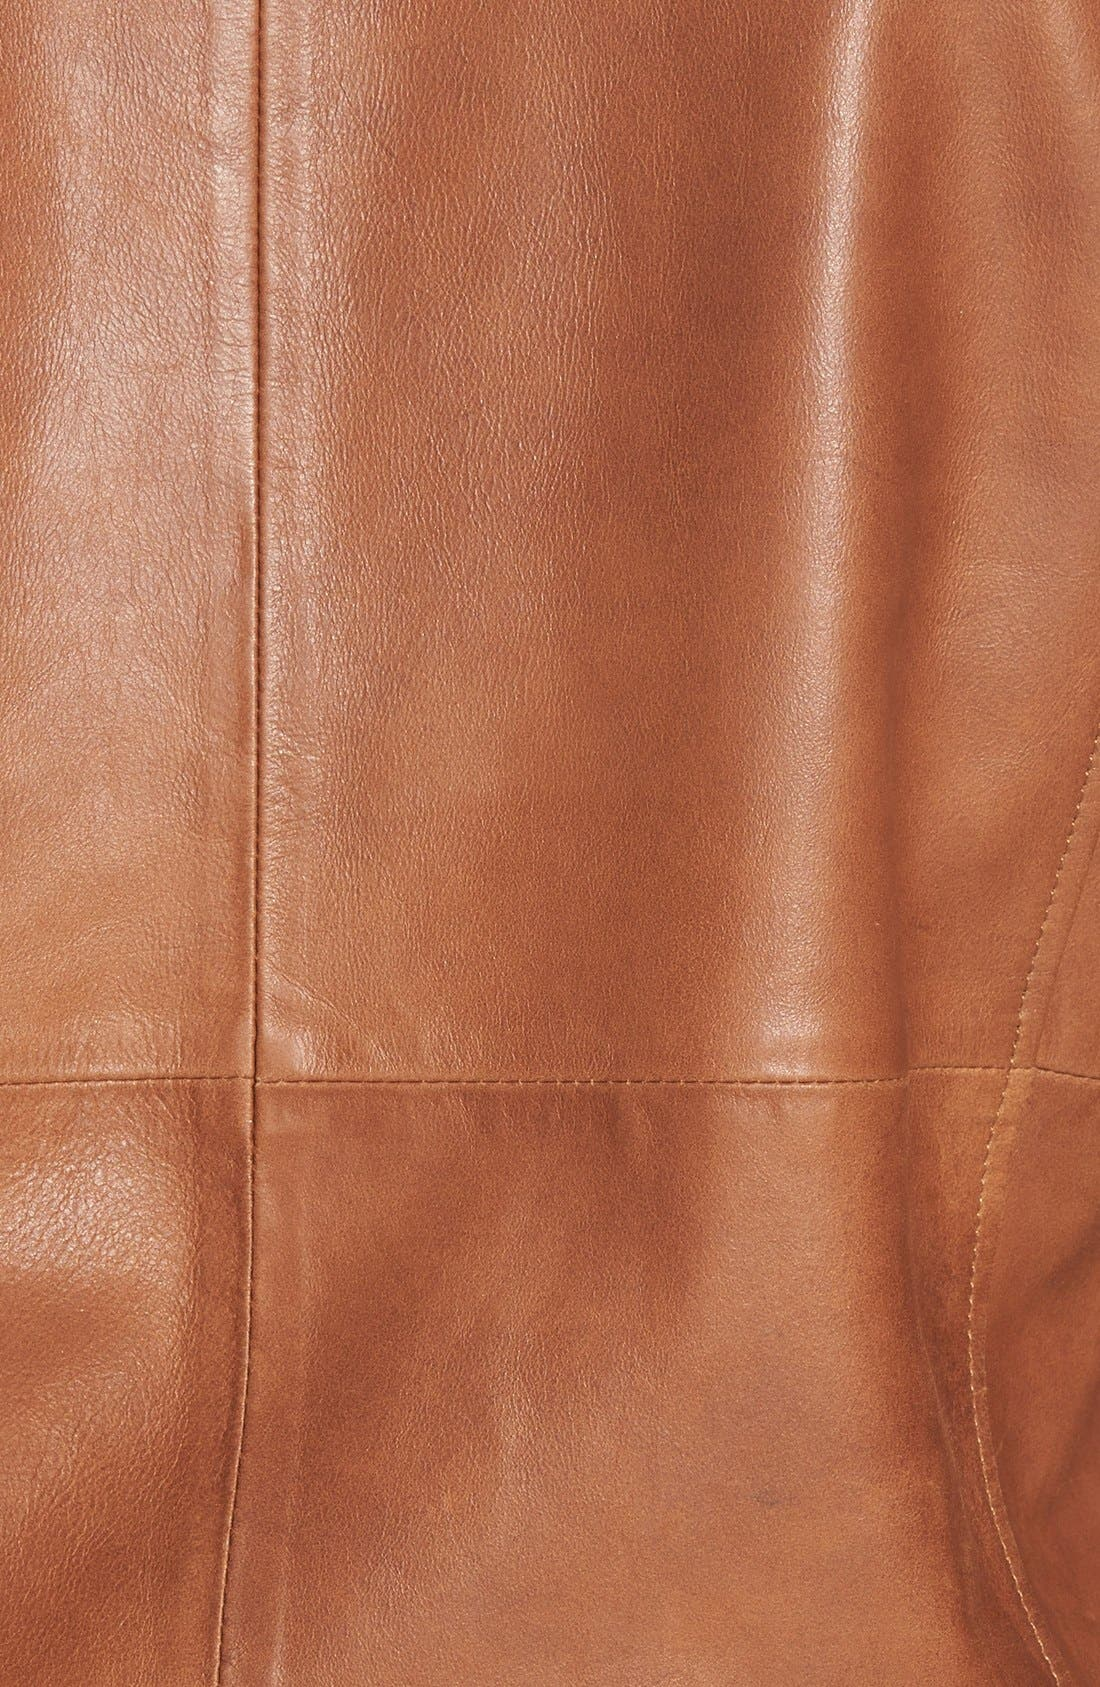 Leather Bomber Jacket,                             Alternate thumbnail 3, color,                             Saddle Brown